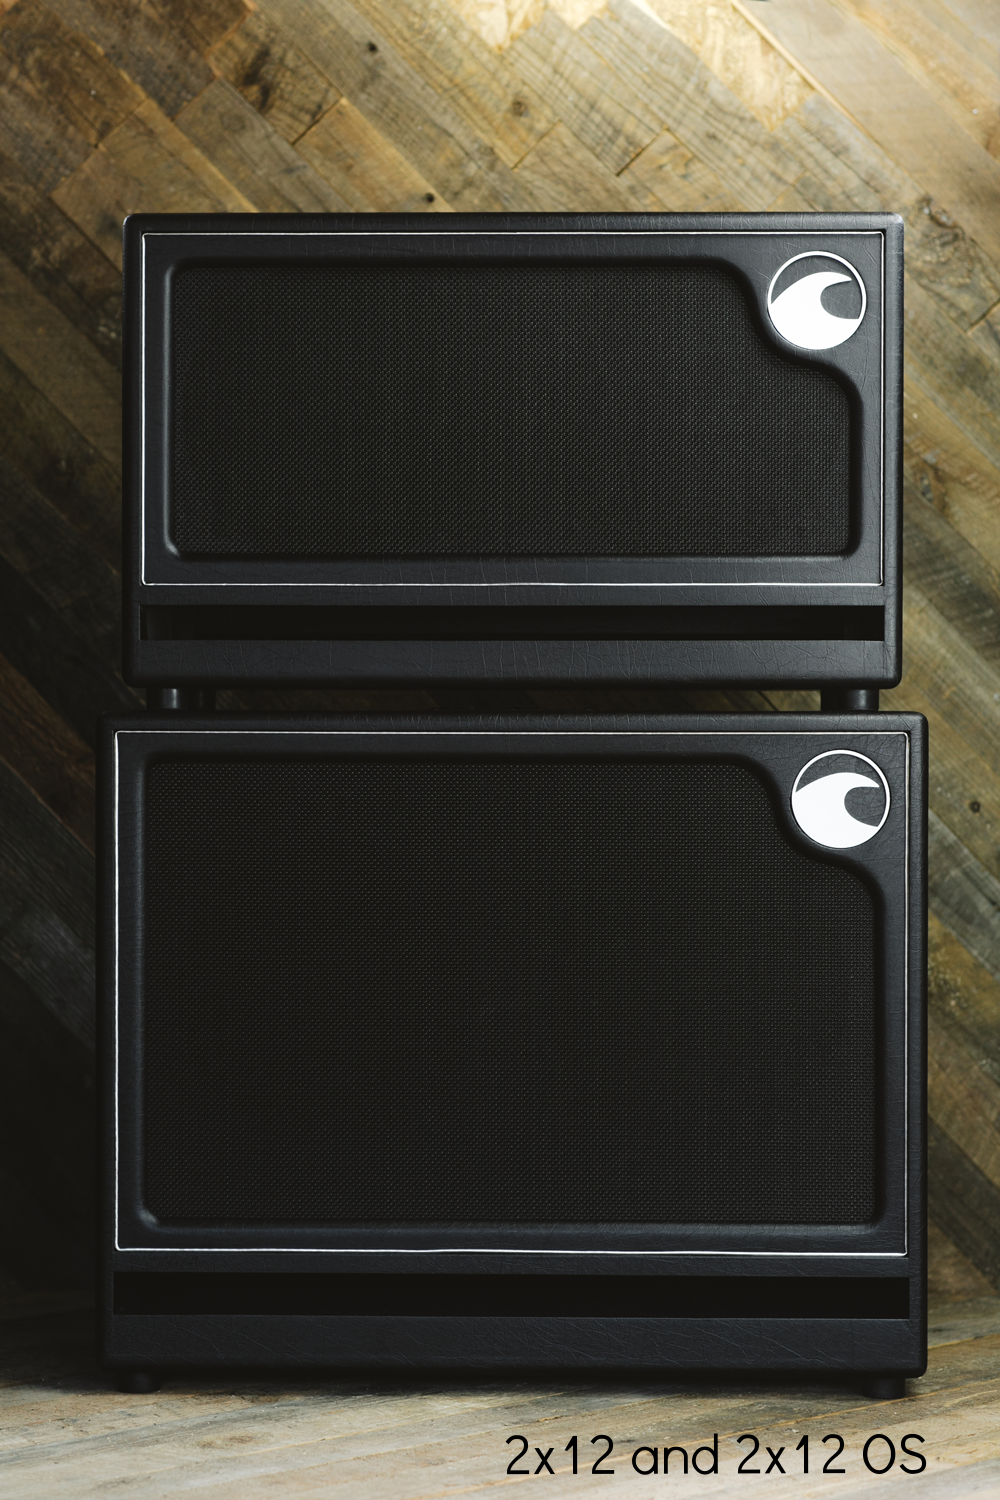 cabinet size and weight comparison port city amplification